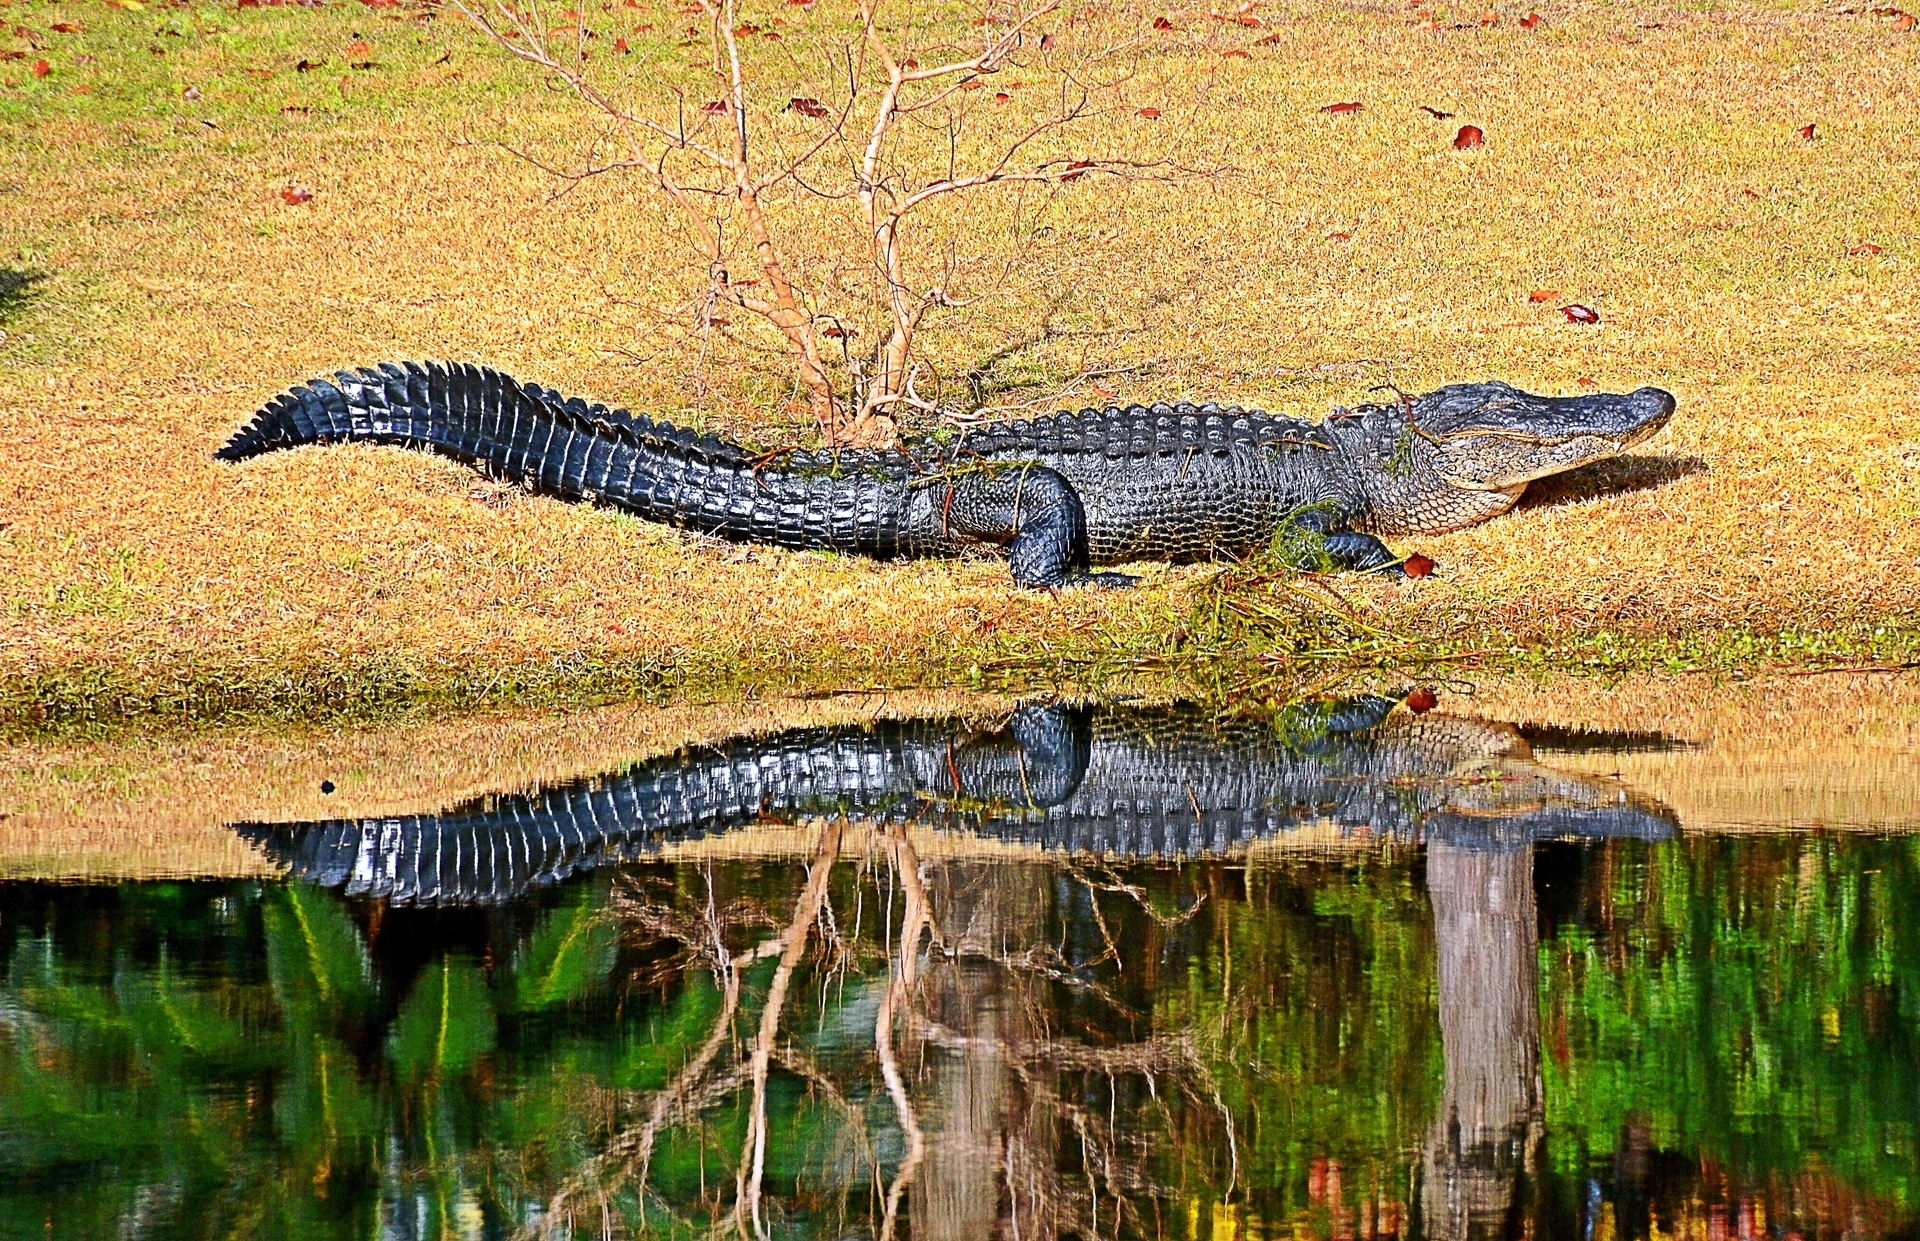 Reflection of an Alligator